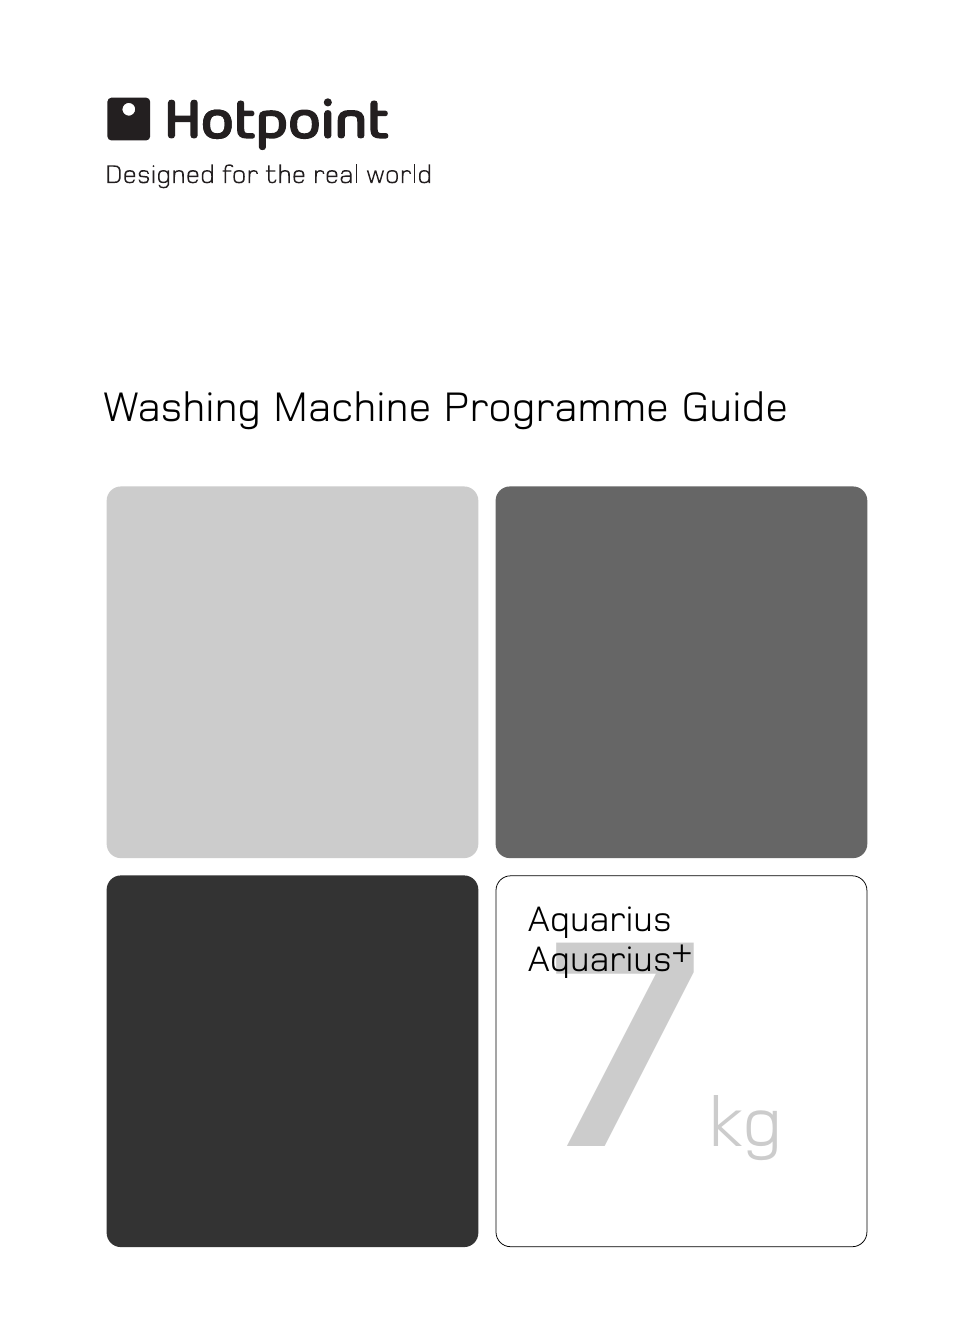 Hotpoint WT540 User Manual   16 pages   Also for: WT760, WT745, AQUQRIUS  PLUS WT740